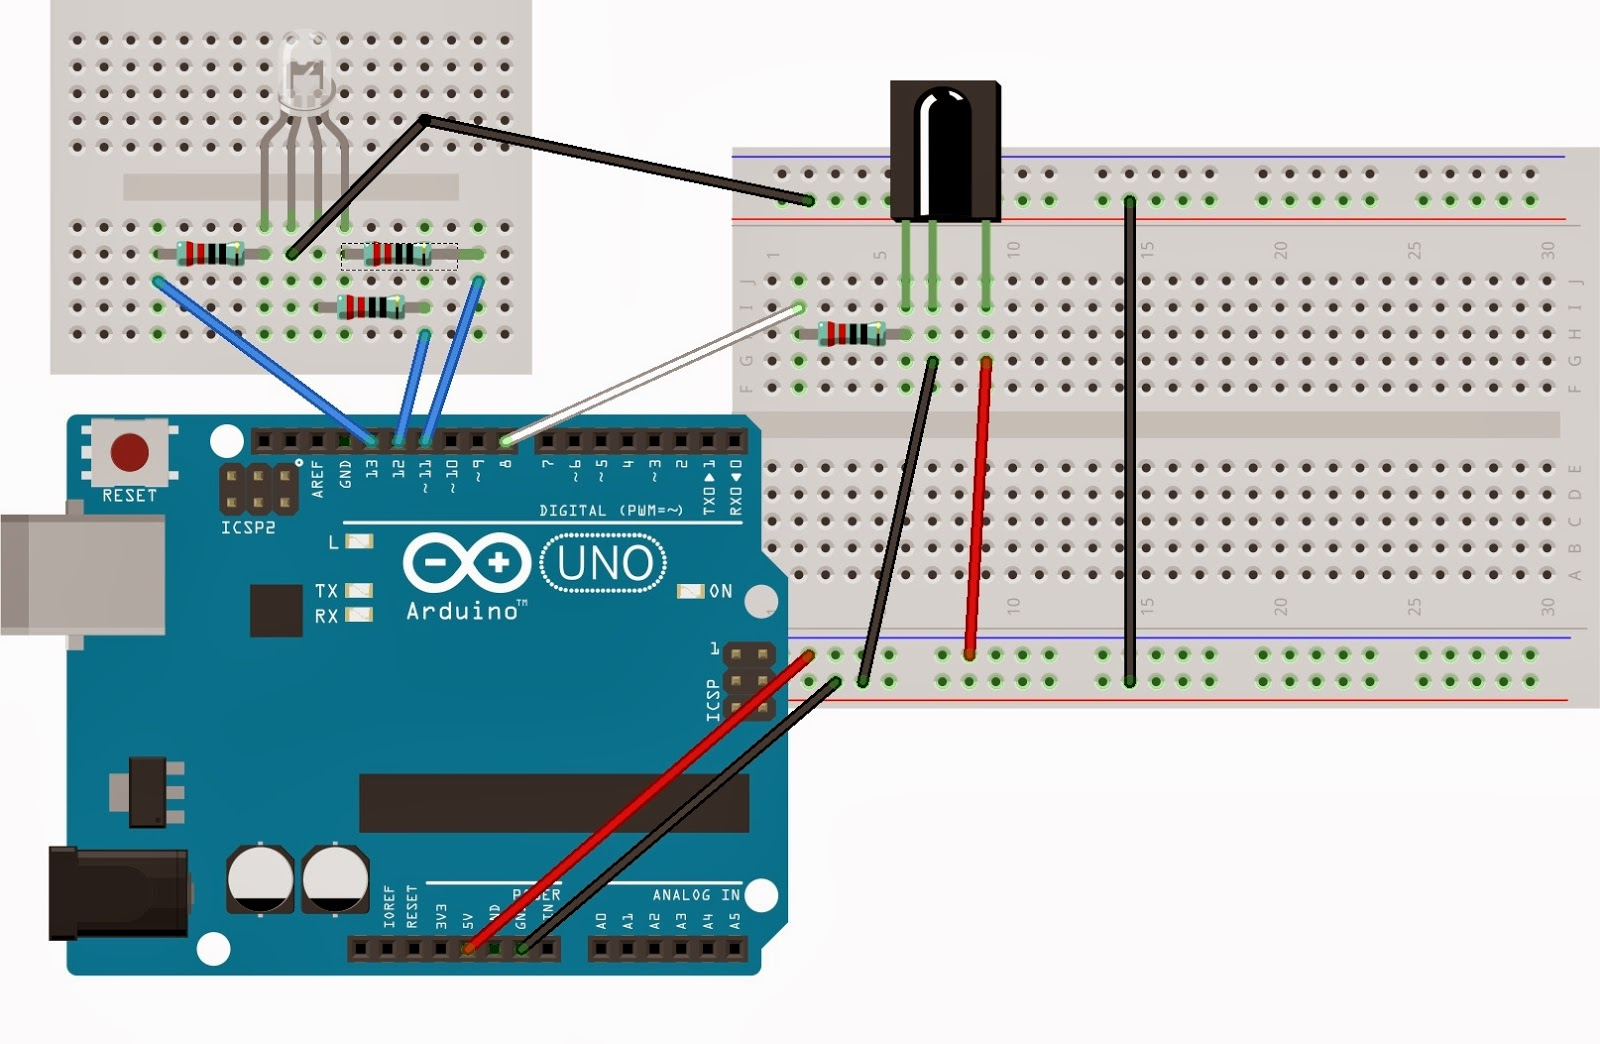 Catalex Ttp223b Arduino Capacitive Touch Sensor Tutorial further Adas in addition Is There A Motion Sensor Light Switch That Does Not Need Ground moreover Sub 03 03 together with Diy Arduino Powered 3d Printed. on power sensor